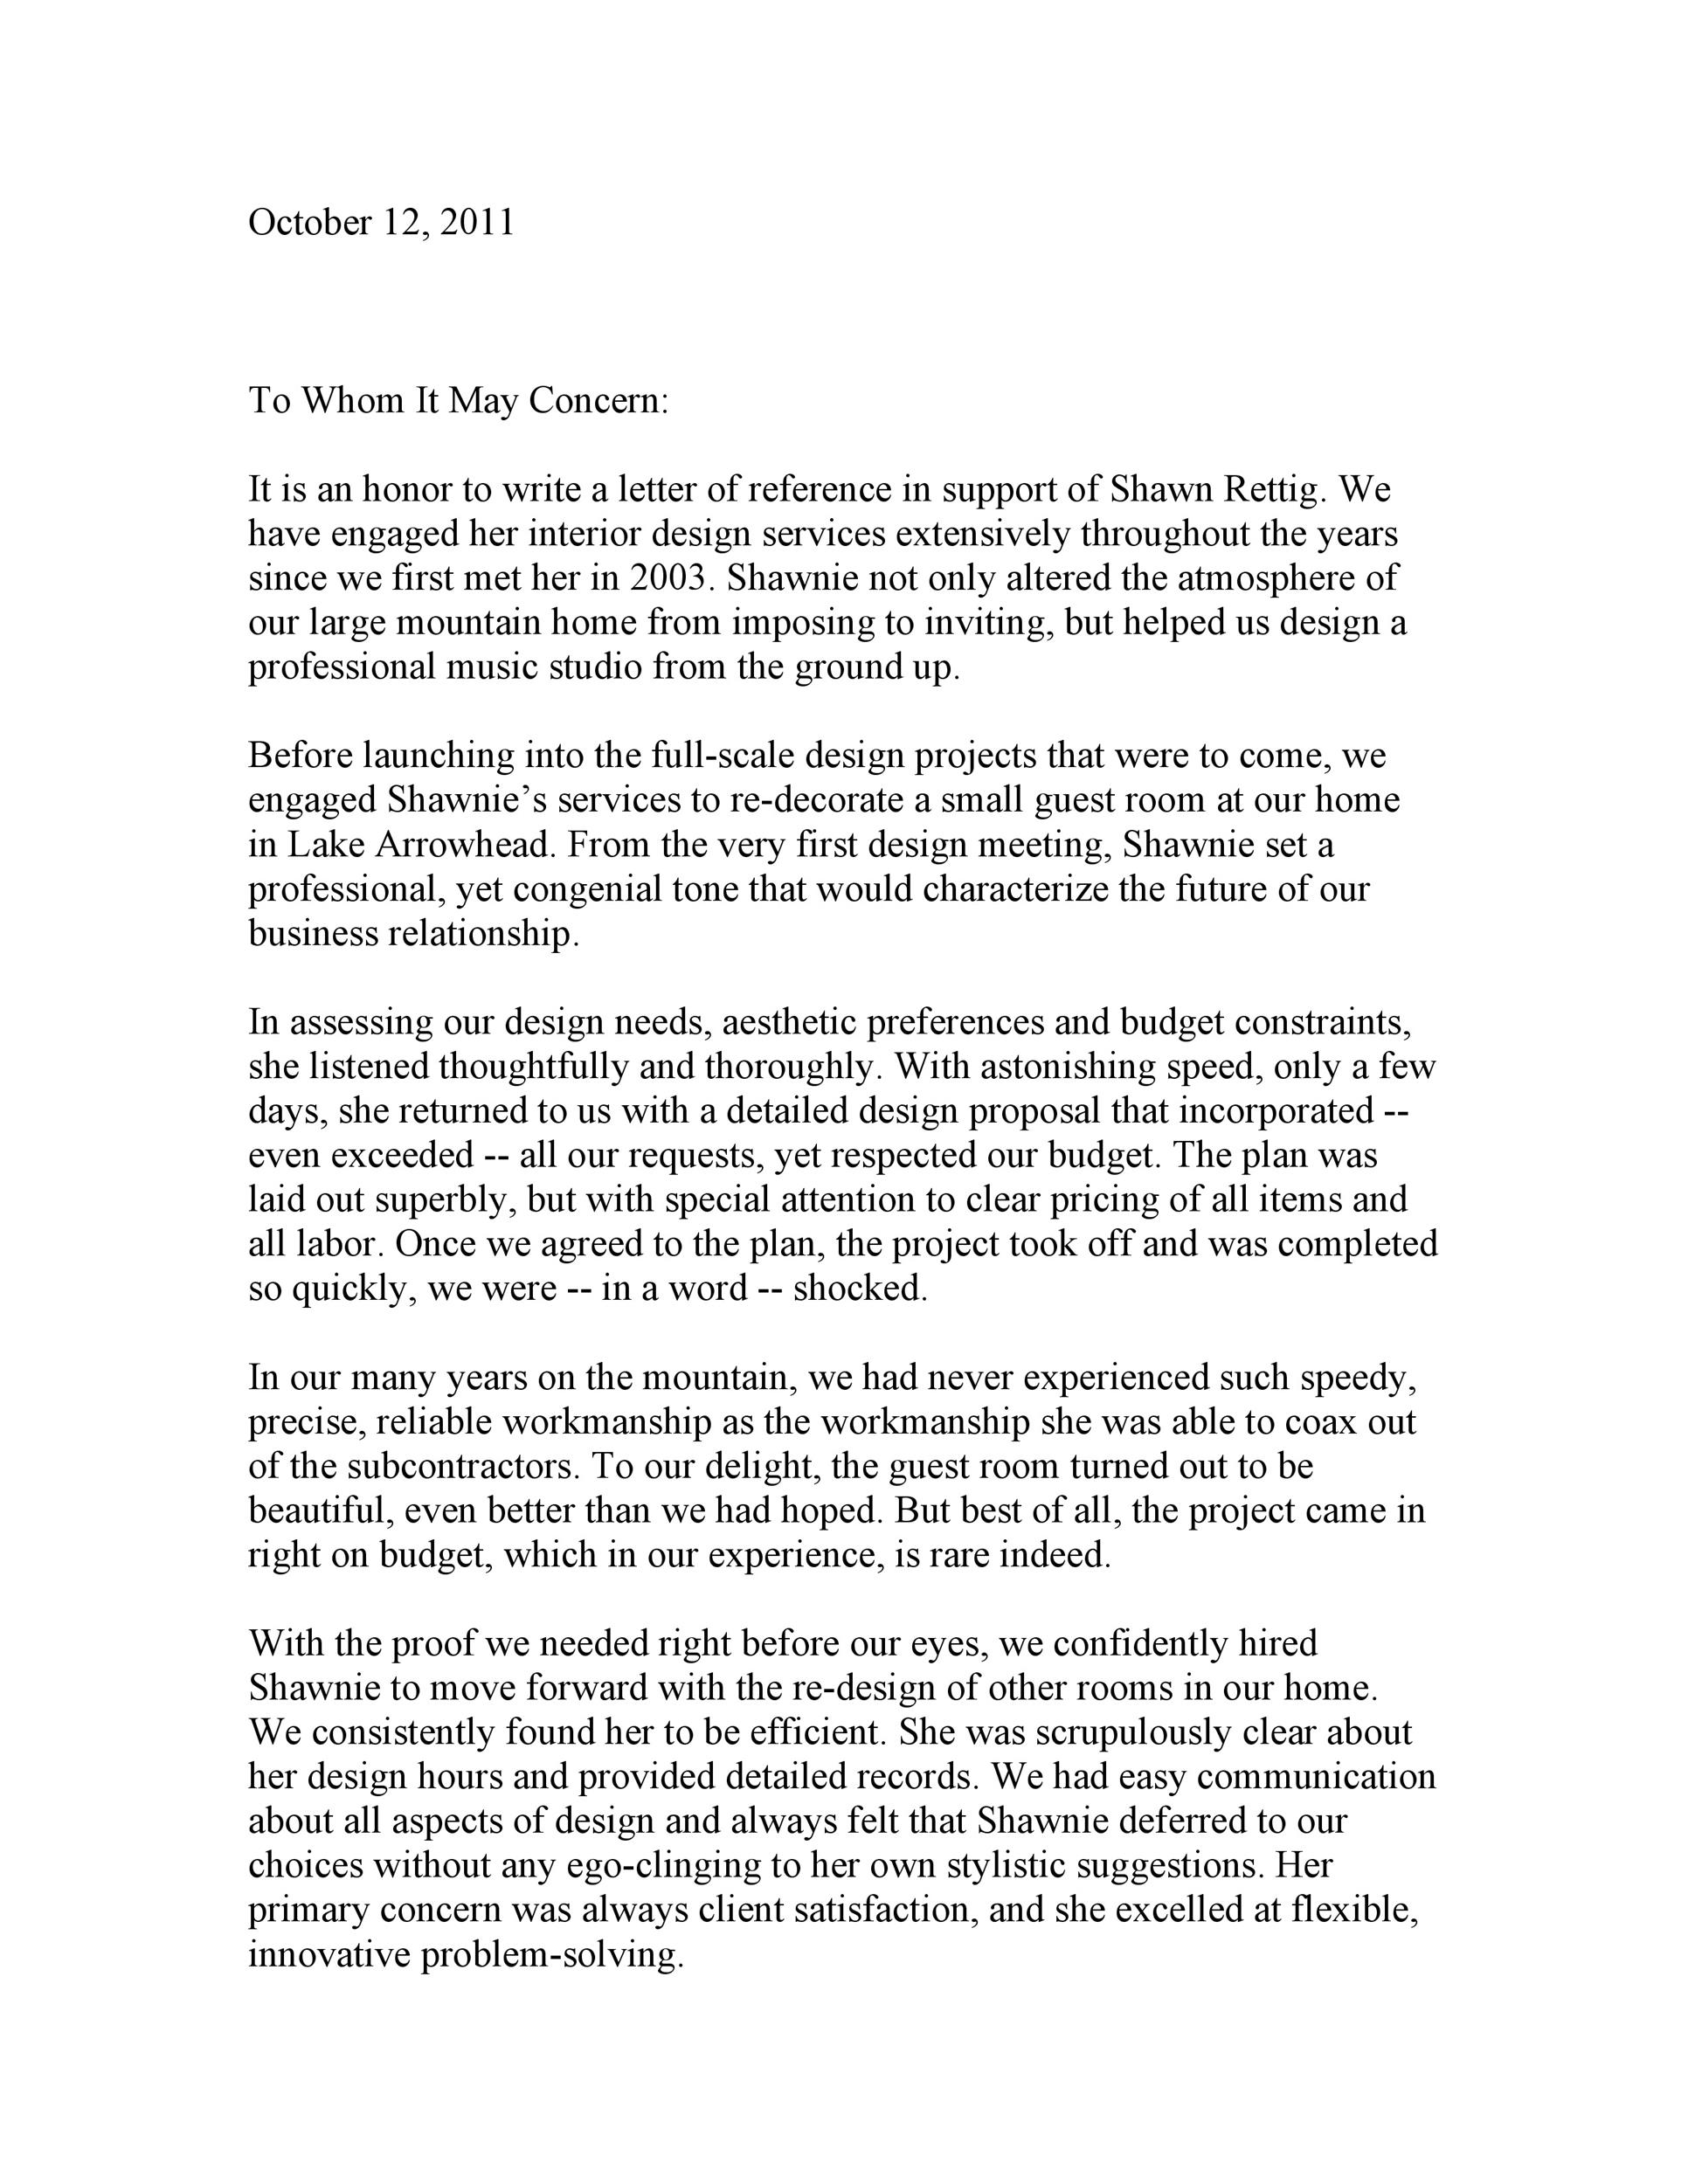 Free to whom it may concern letter 06